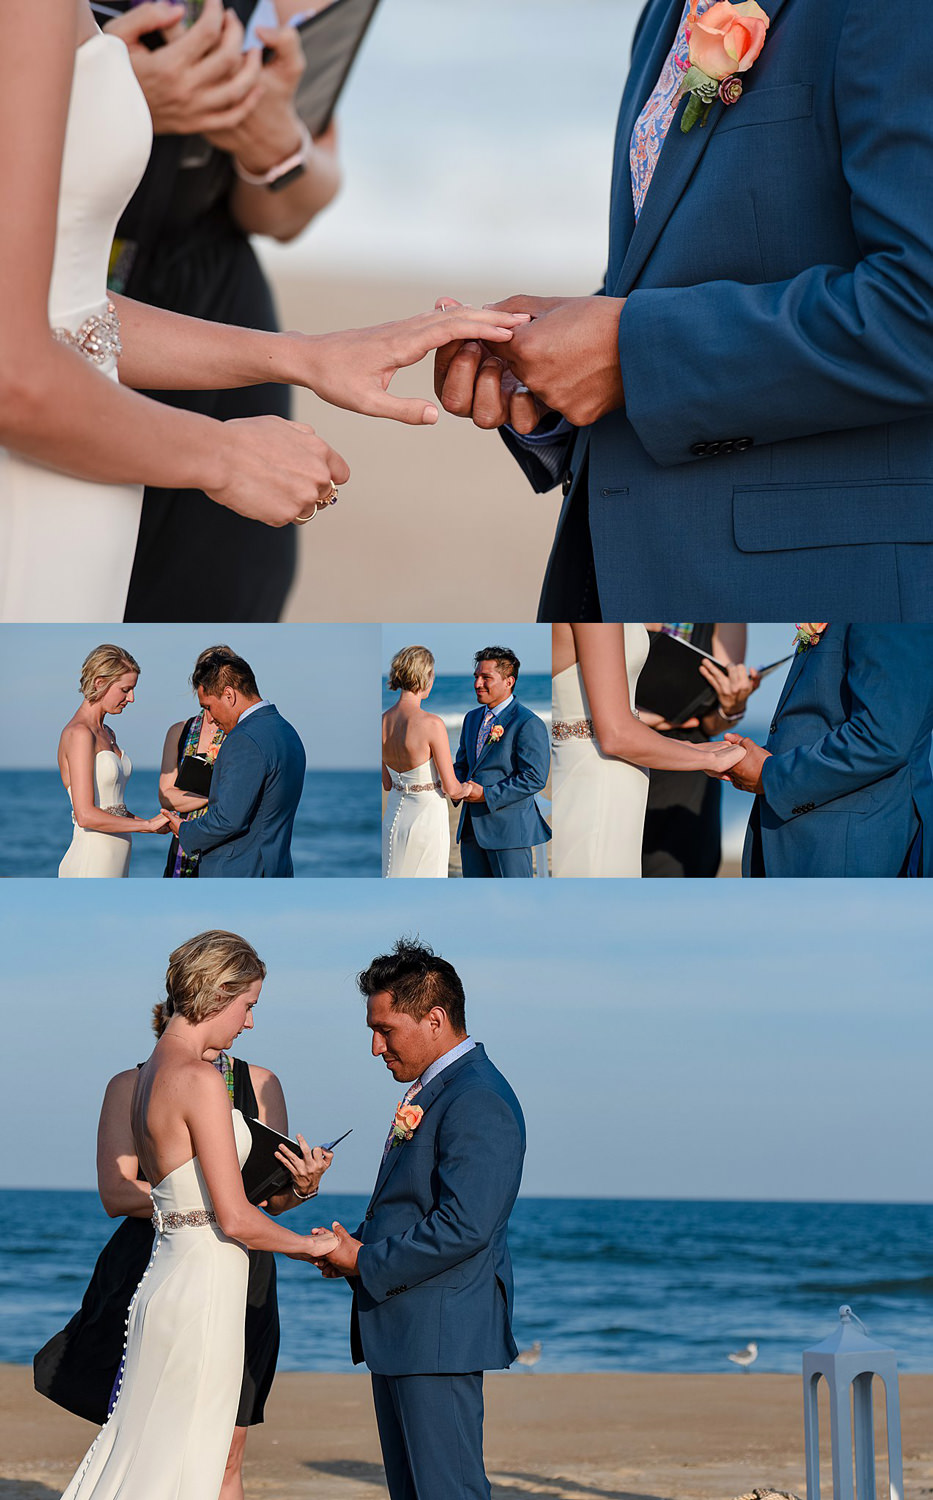 beach-ceremony-photos-sandbridge-wedding-melissa-bliss-photography-VA.jpg